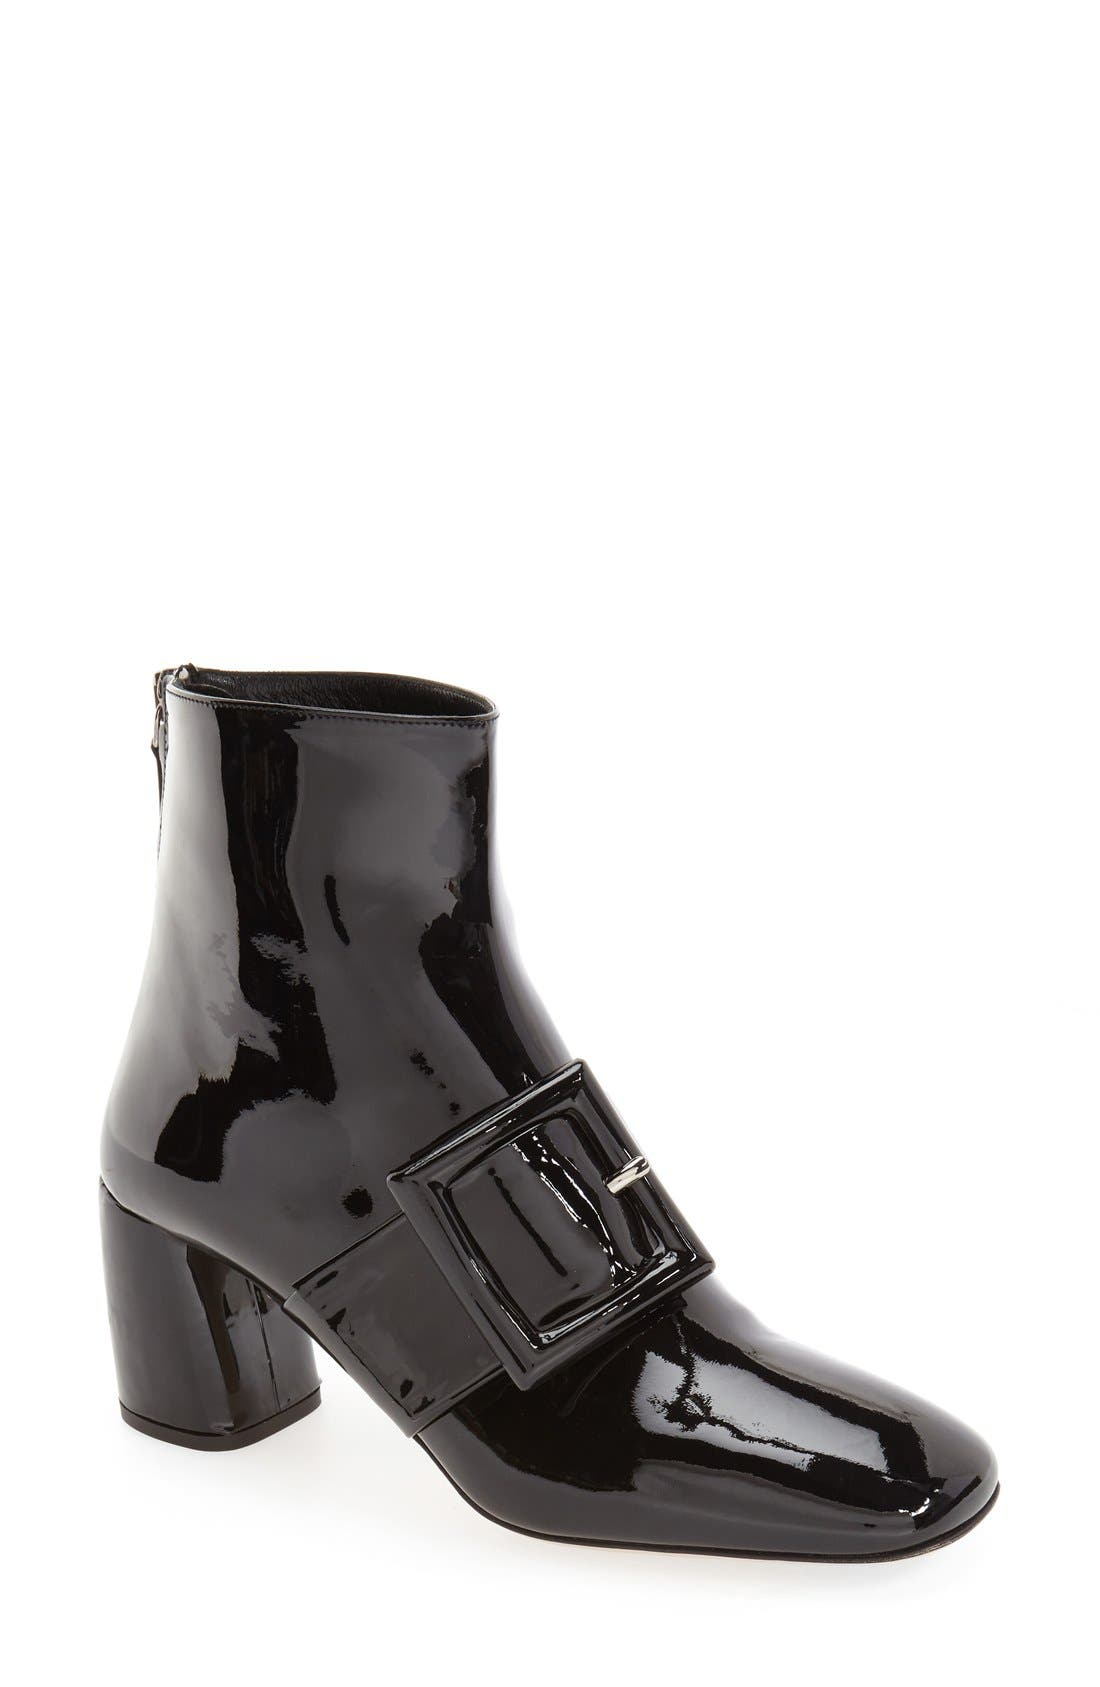 Alternate Image 1 Selected - Miu Miu Wrapped Buckle Square Toe Bootie (Women)